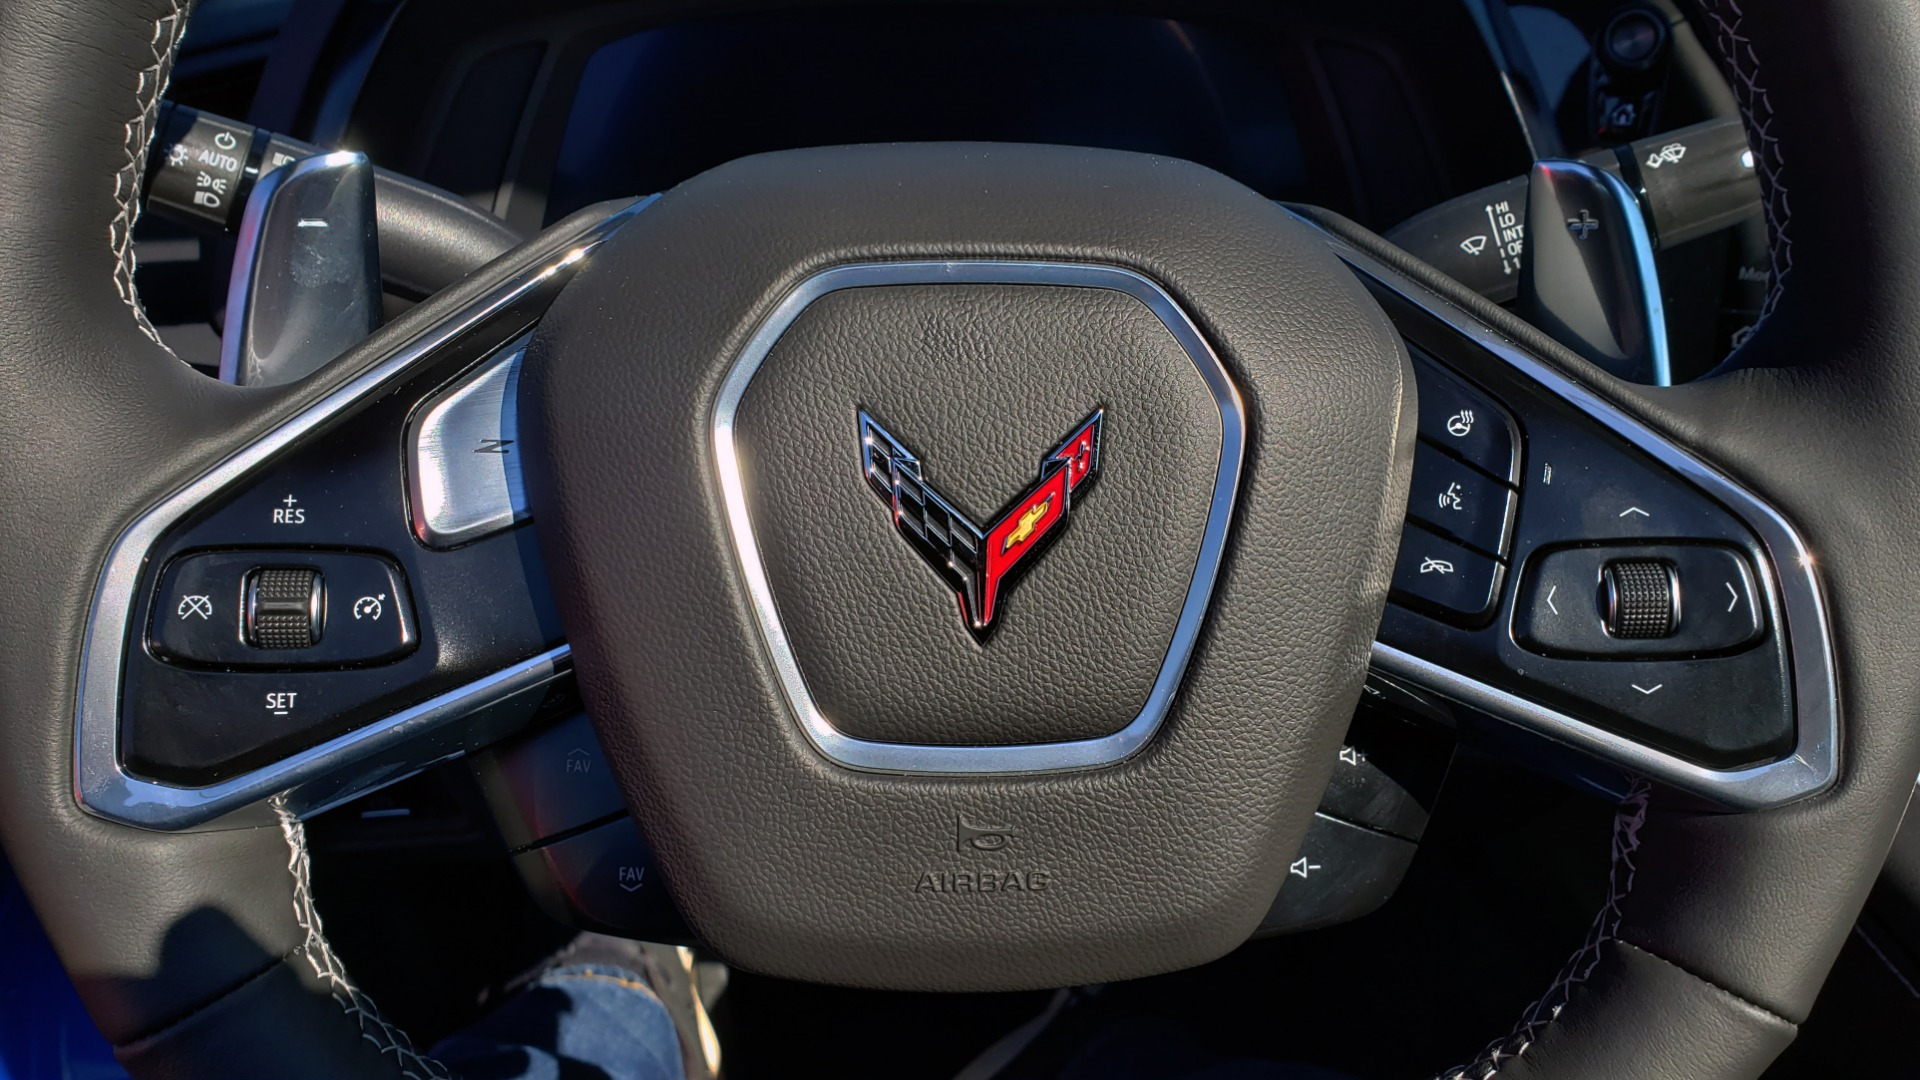 Used 2020 Chevrolet C8 CORVETTE STINGRAY 2LT COUPE / NAV / HUD / BOSE / GT2 SEATS / FRONT LIFT / REARVIEW for sale Sold at Formula Imports in Charlotte NC 28227 63